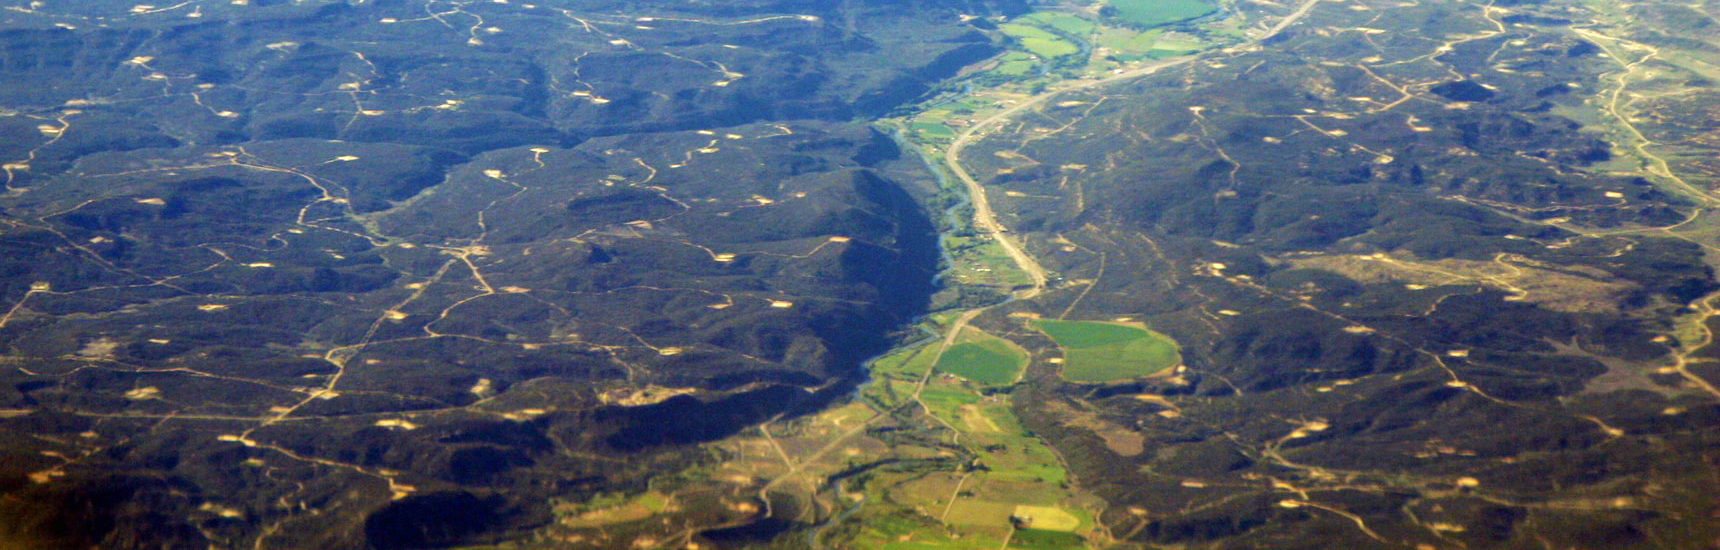 Reducing Oil and Gas Exploitation in the San Juan Basin